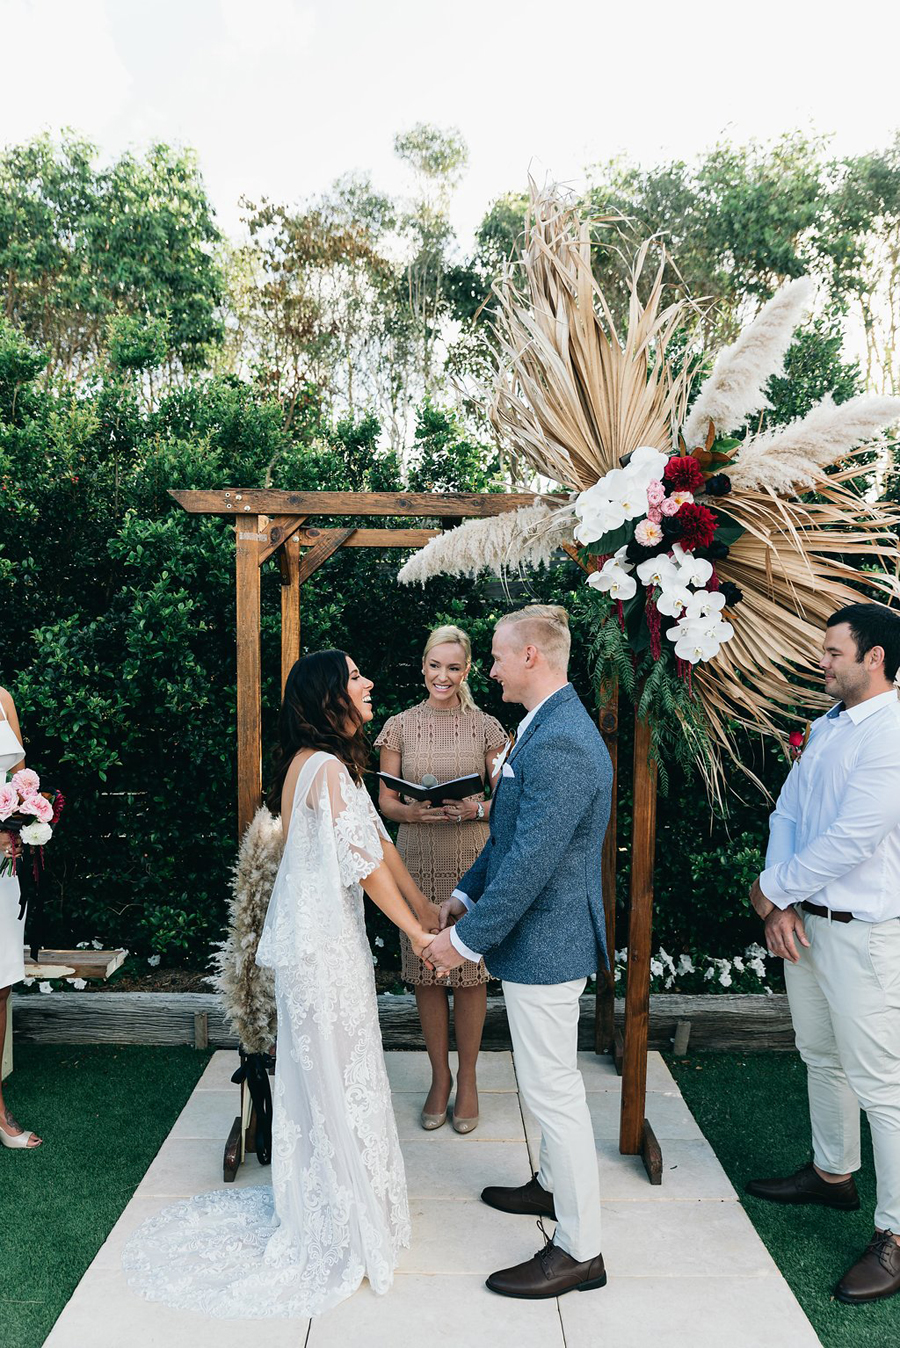 tweed-coast-weddings-wedding-venue-osteria-casuarina-garden-ceremony-reception-coastal-elyse-peter024.jpg